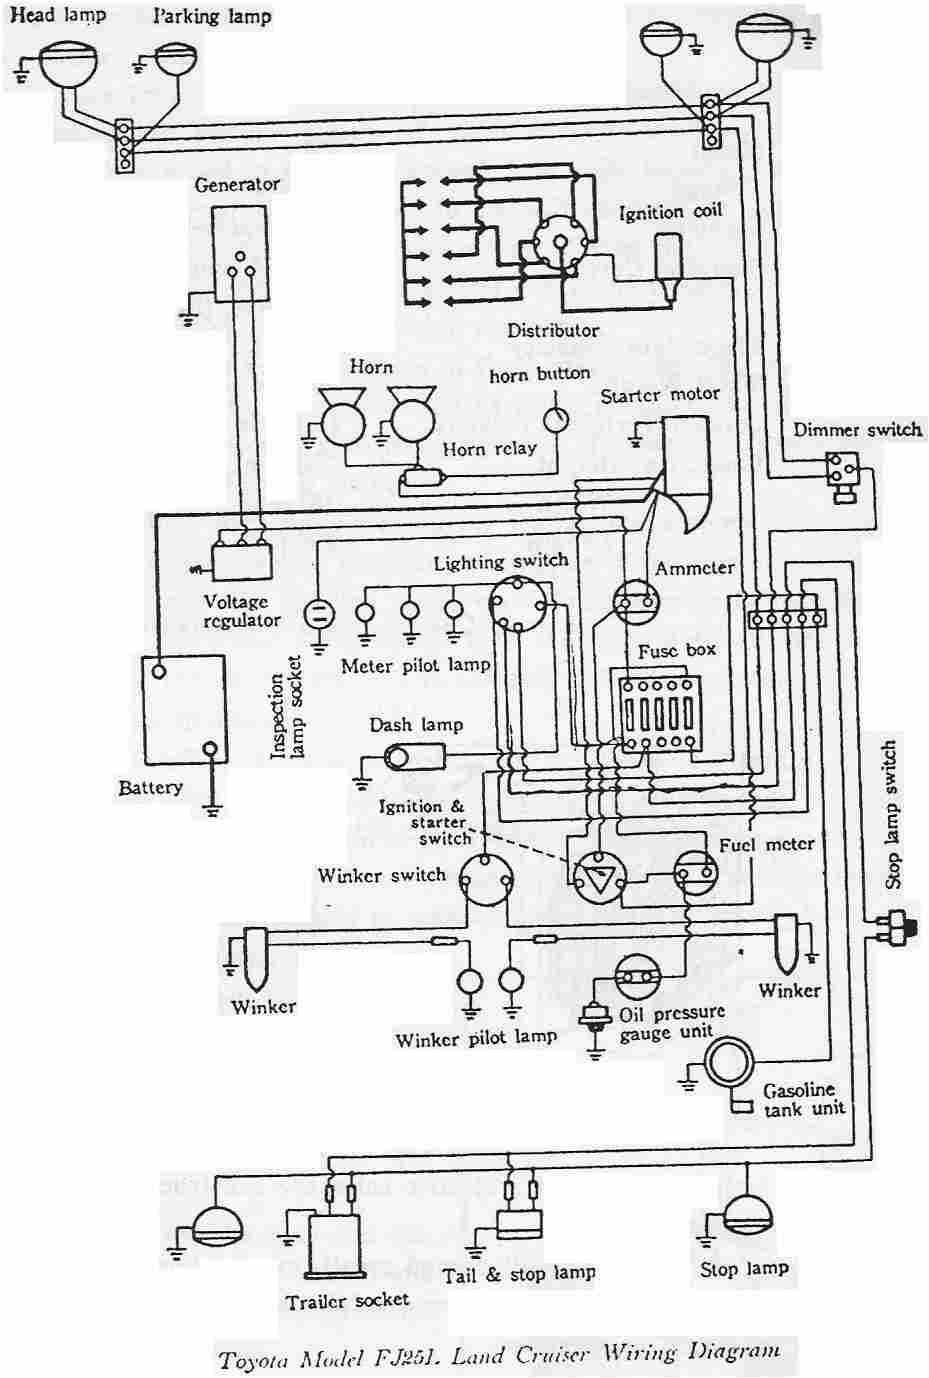 toyota land cruiser wiring diagram pdf